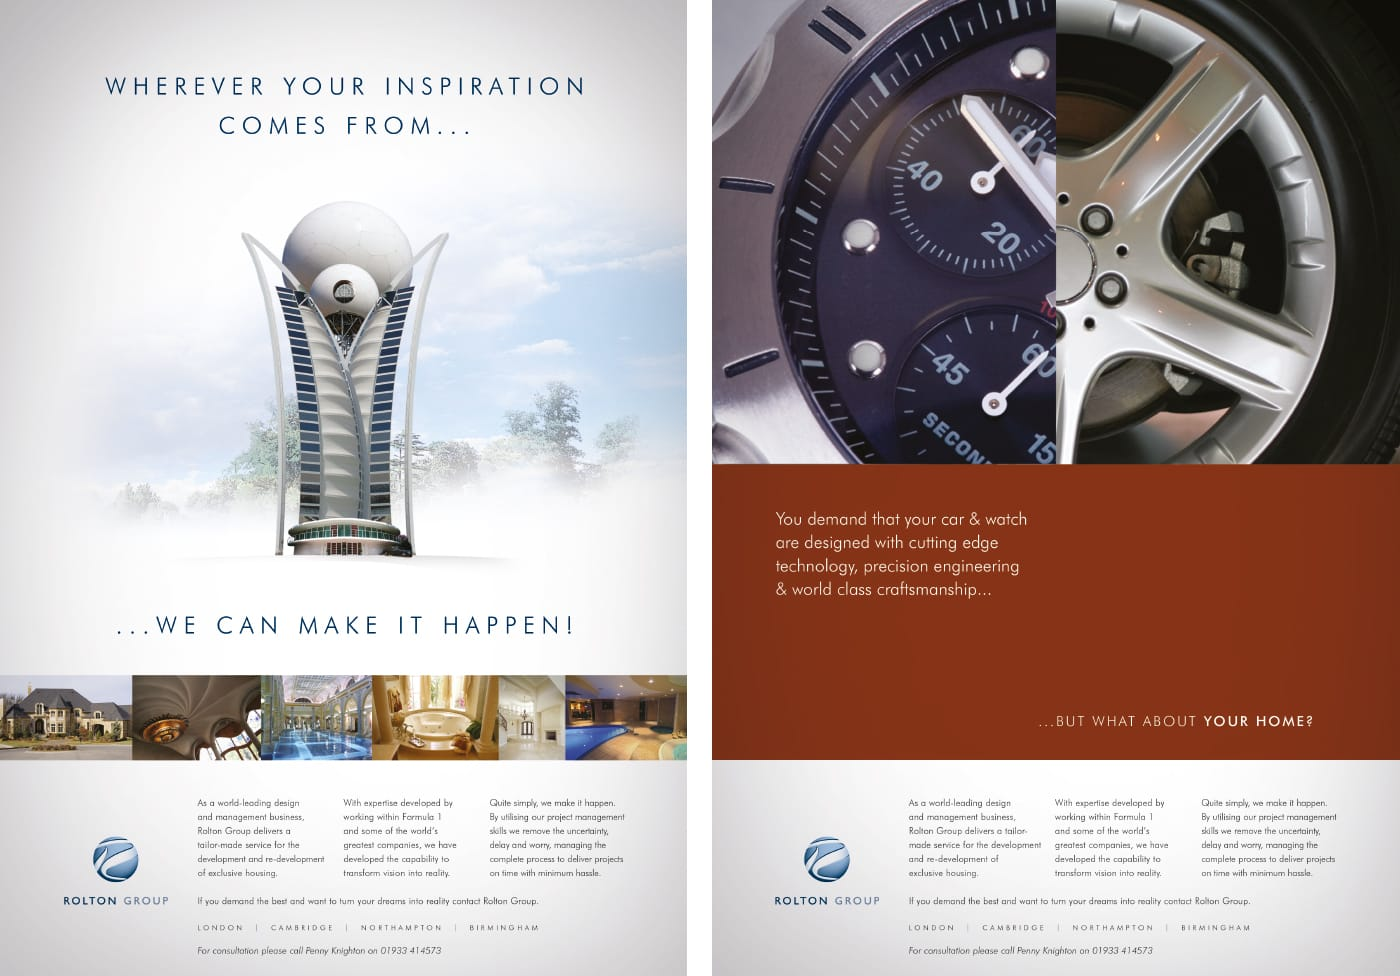 Press advertising campaign created on behalf of a large independent engineering group.